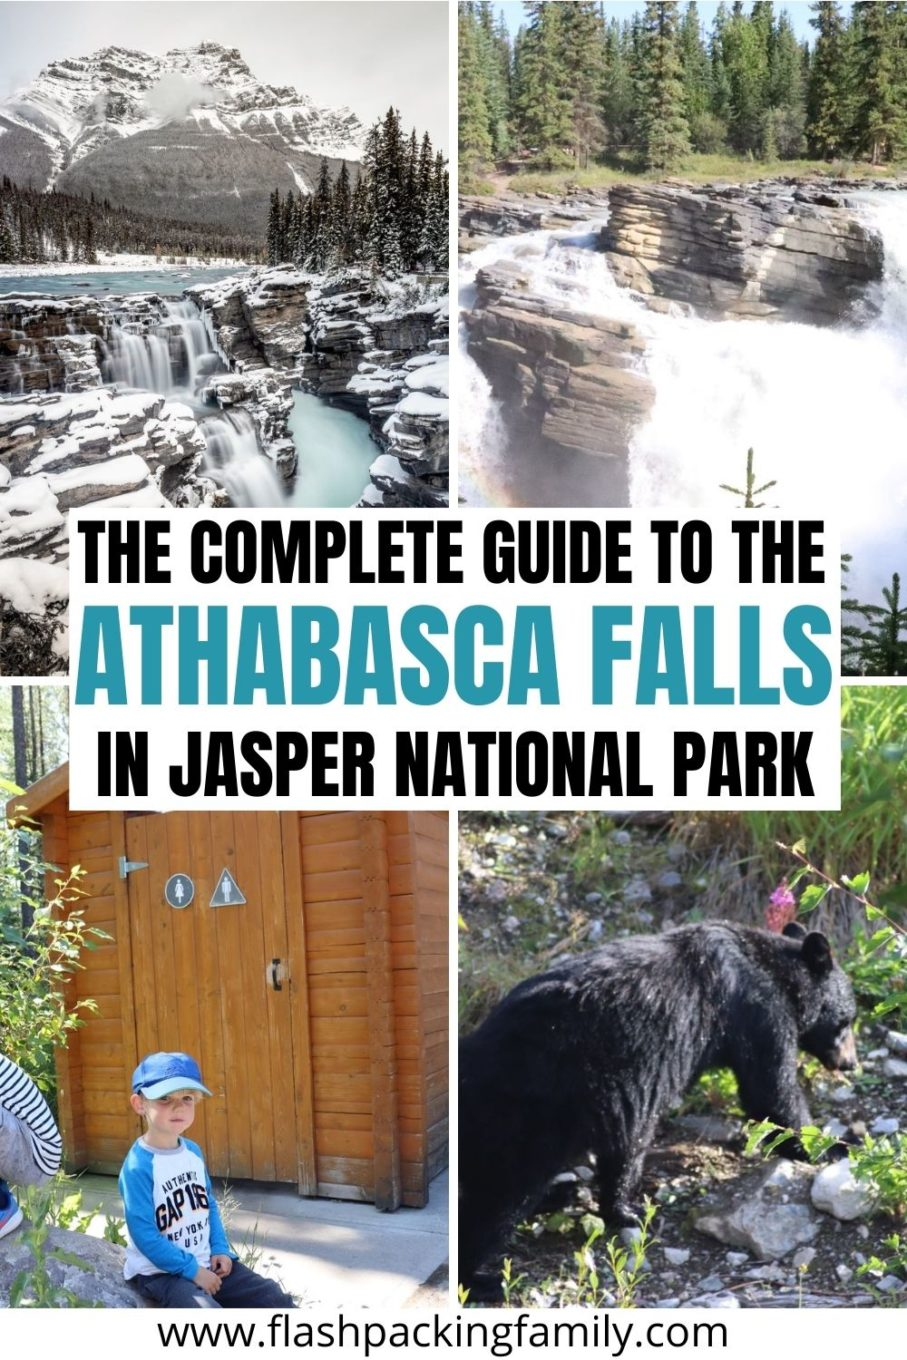 The Complete Guide to the Athabasca Falls in Jasper National Park